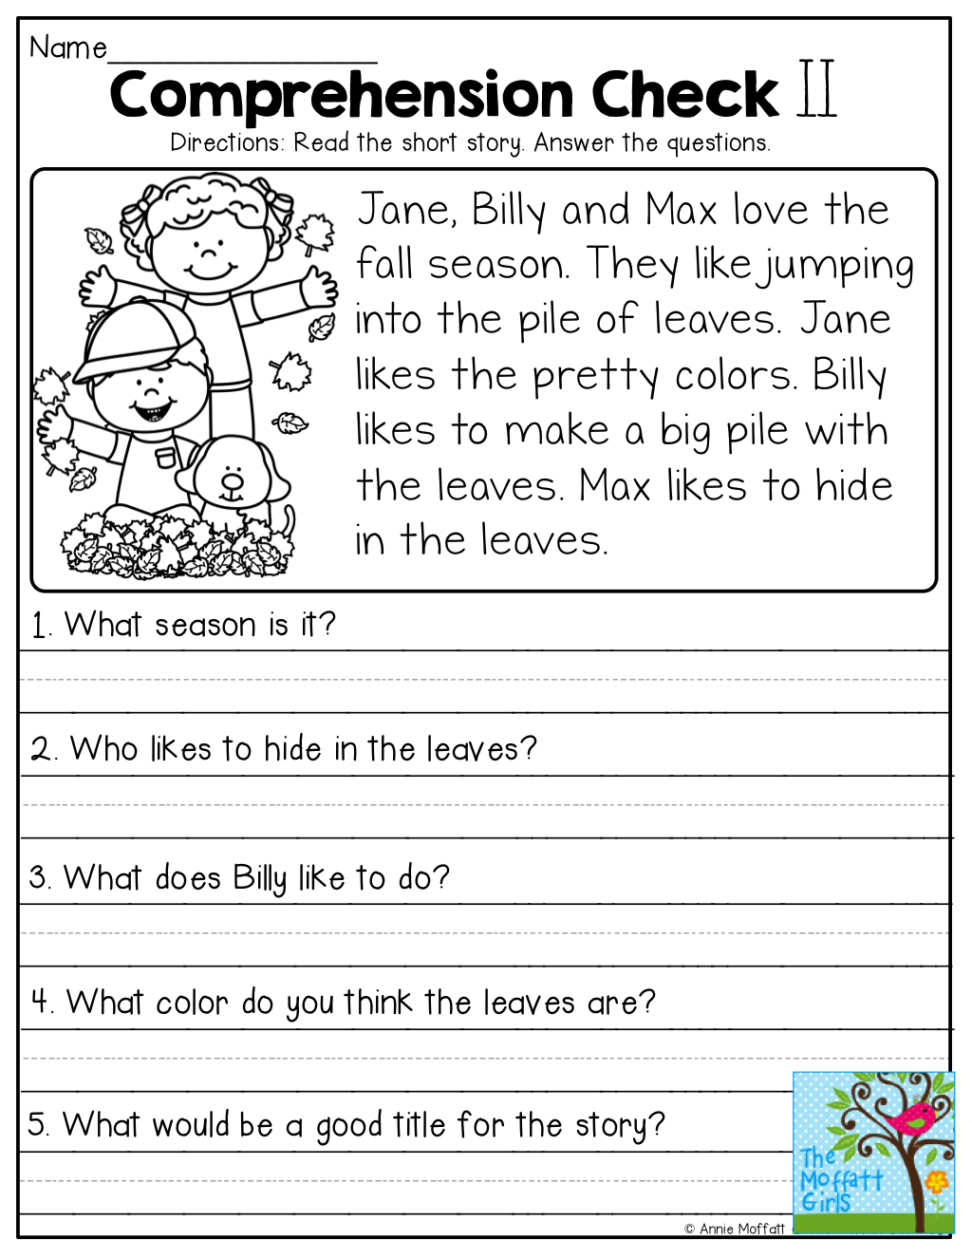 Worksheet. Free Printable Reading Comprehension Worksheets - Free Printable Reading Comprehension Worksheets